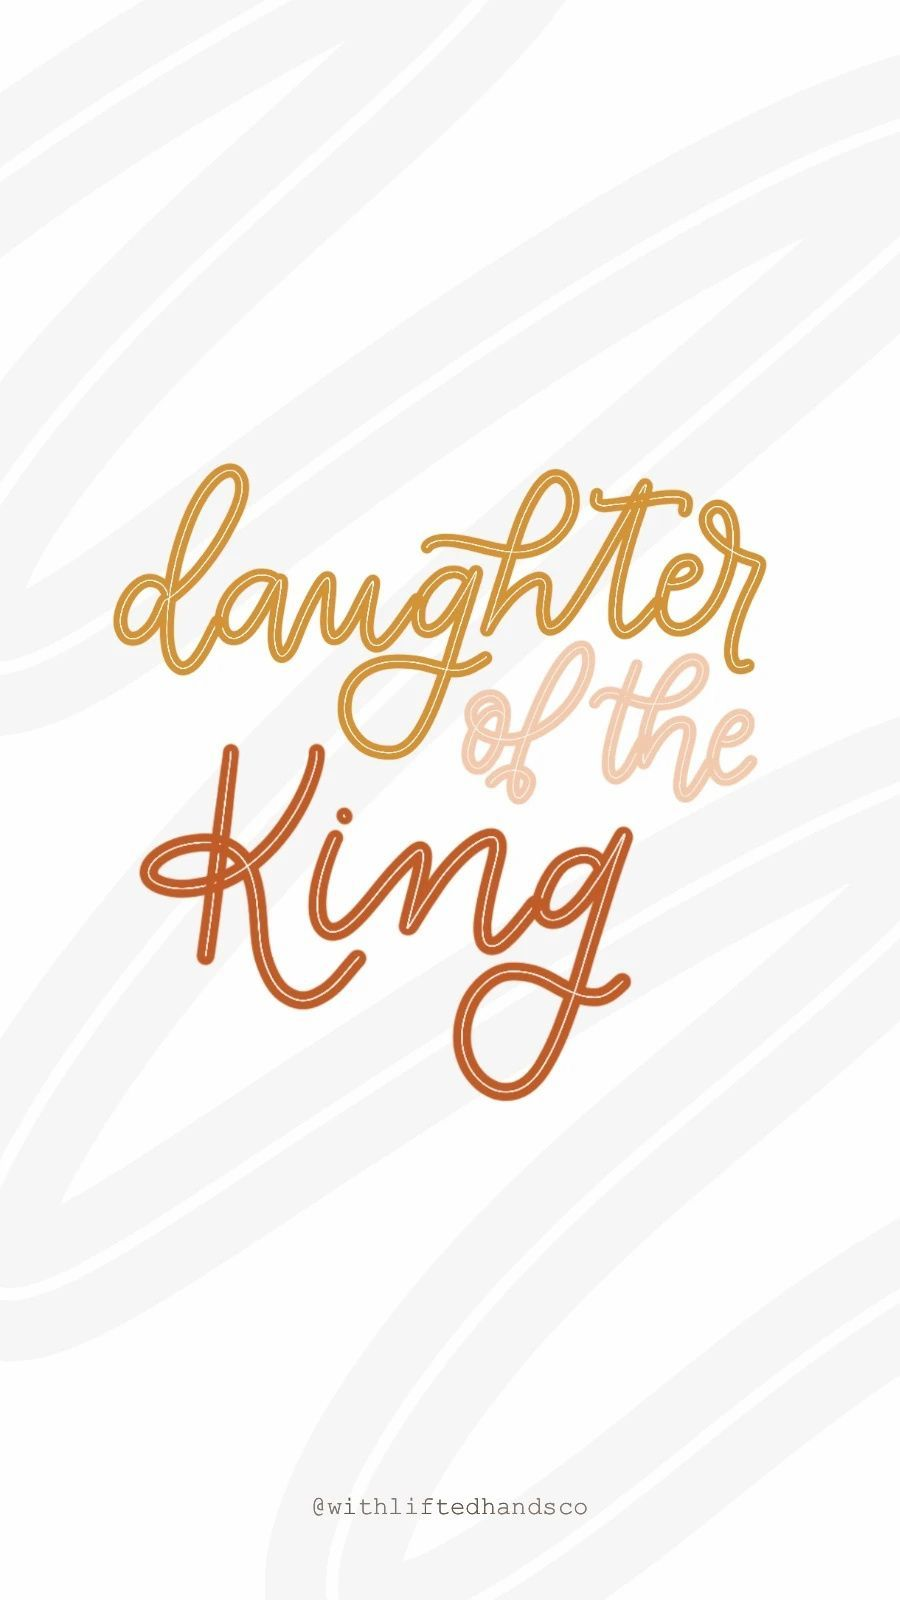 Daughter of the king, Jesus Phone Wallpapers   WithLiftedHandsCo